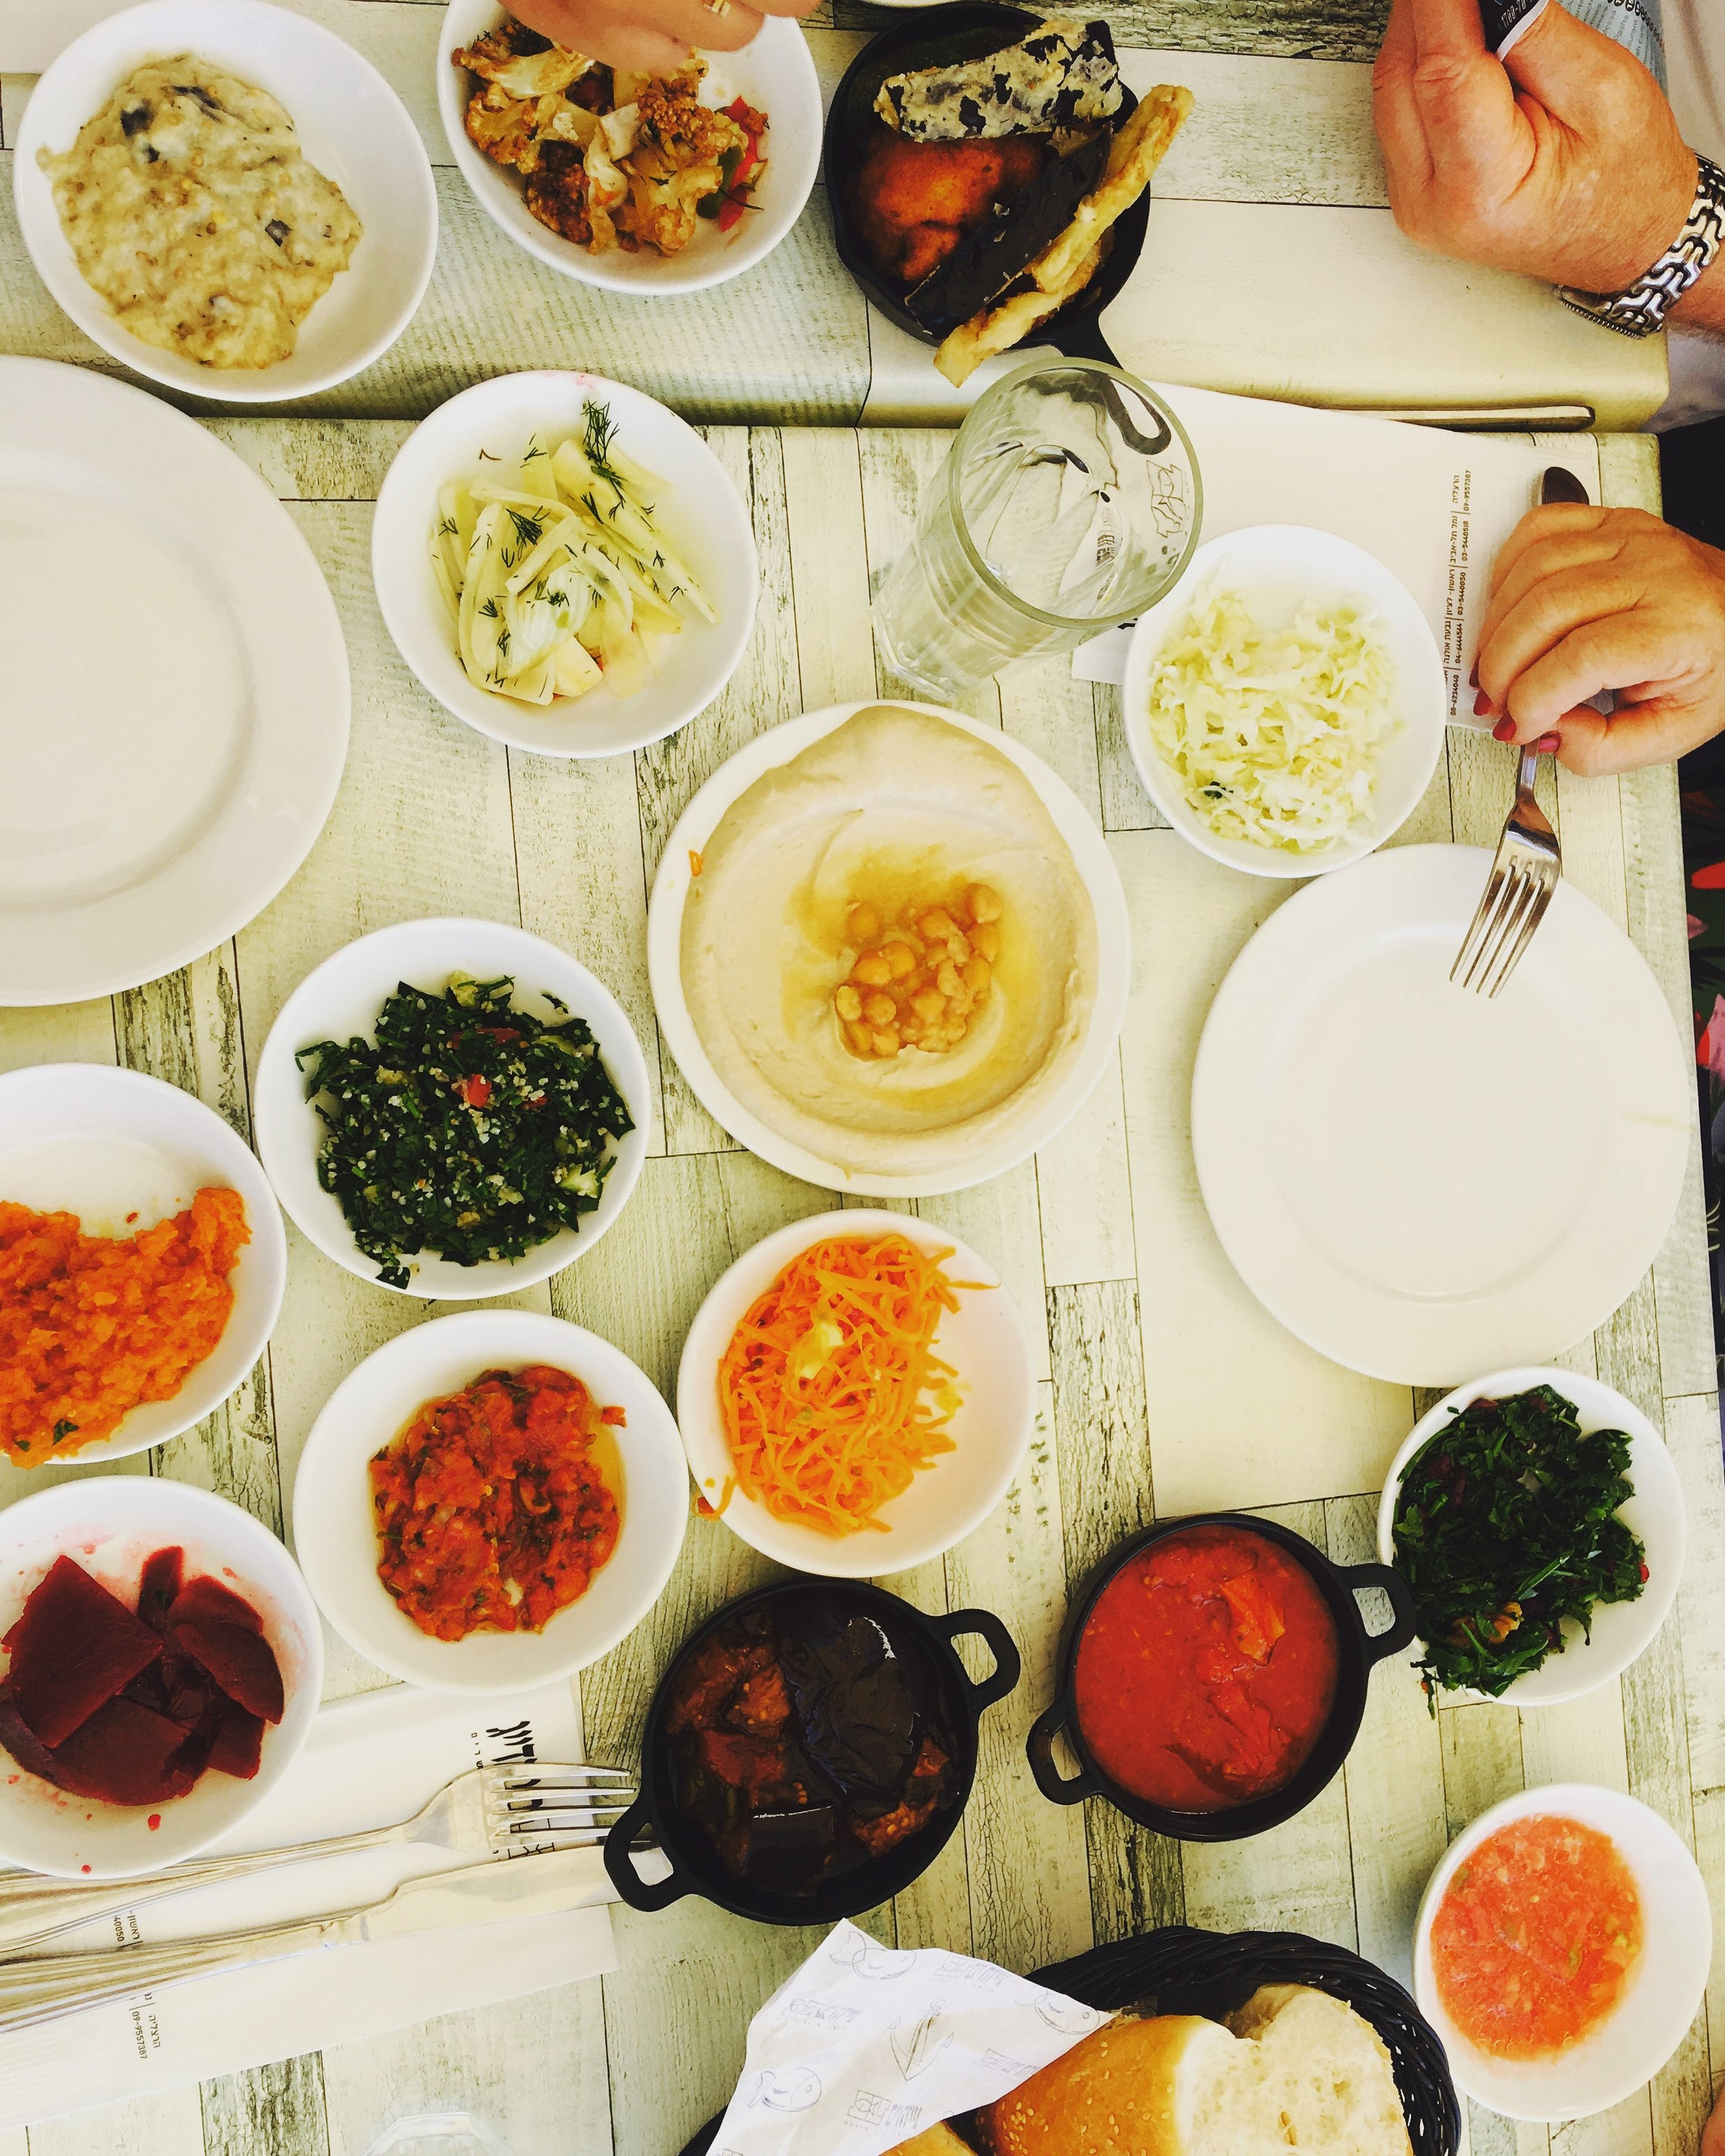 Israeli lunch with all the fixins